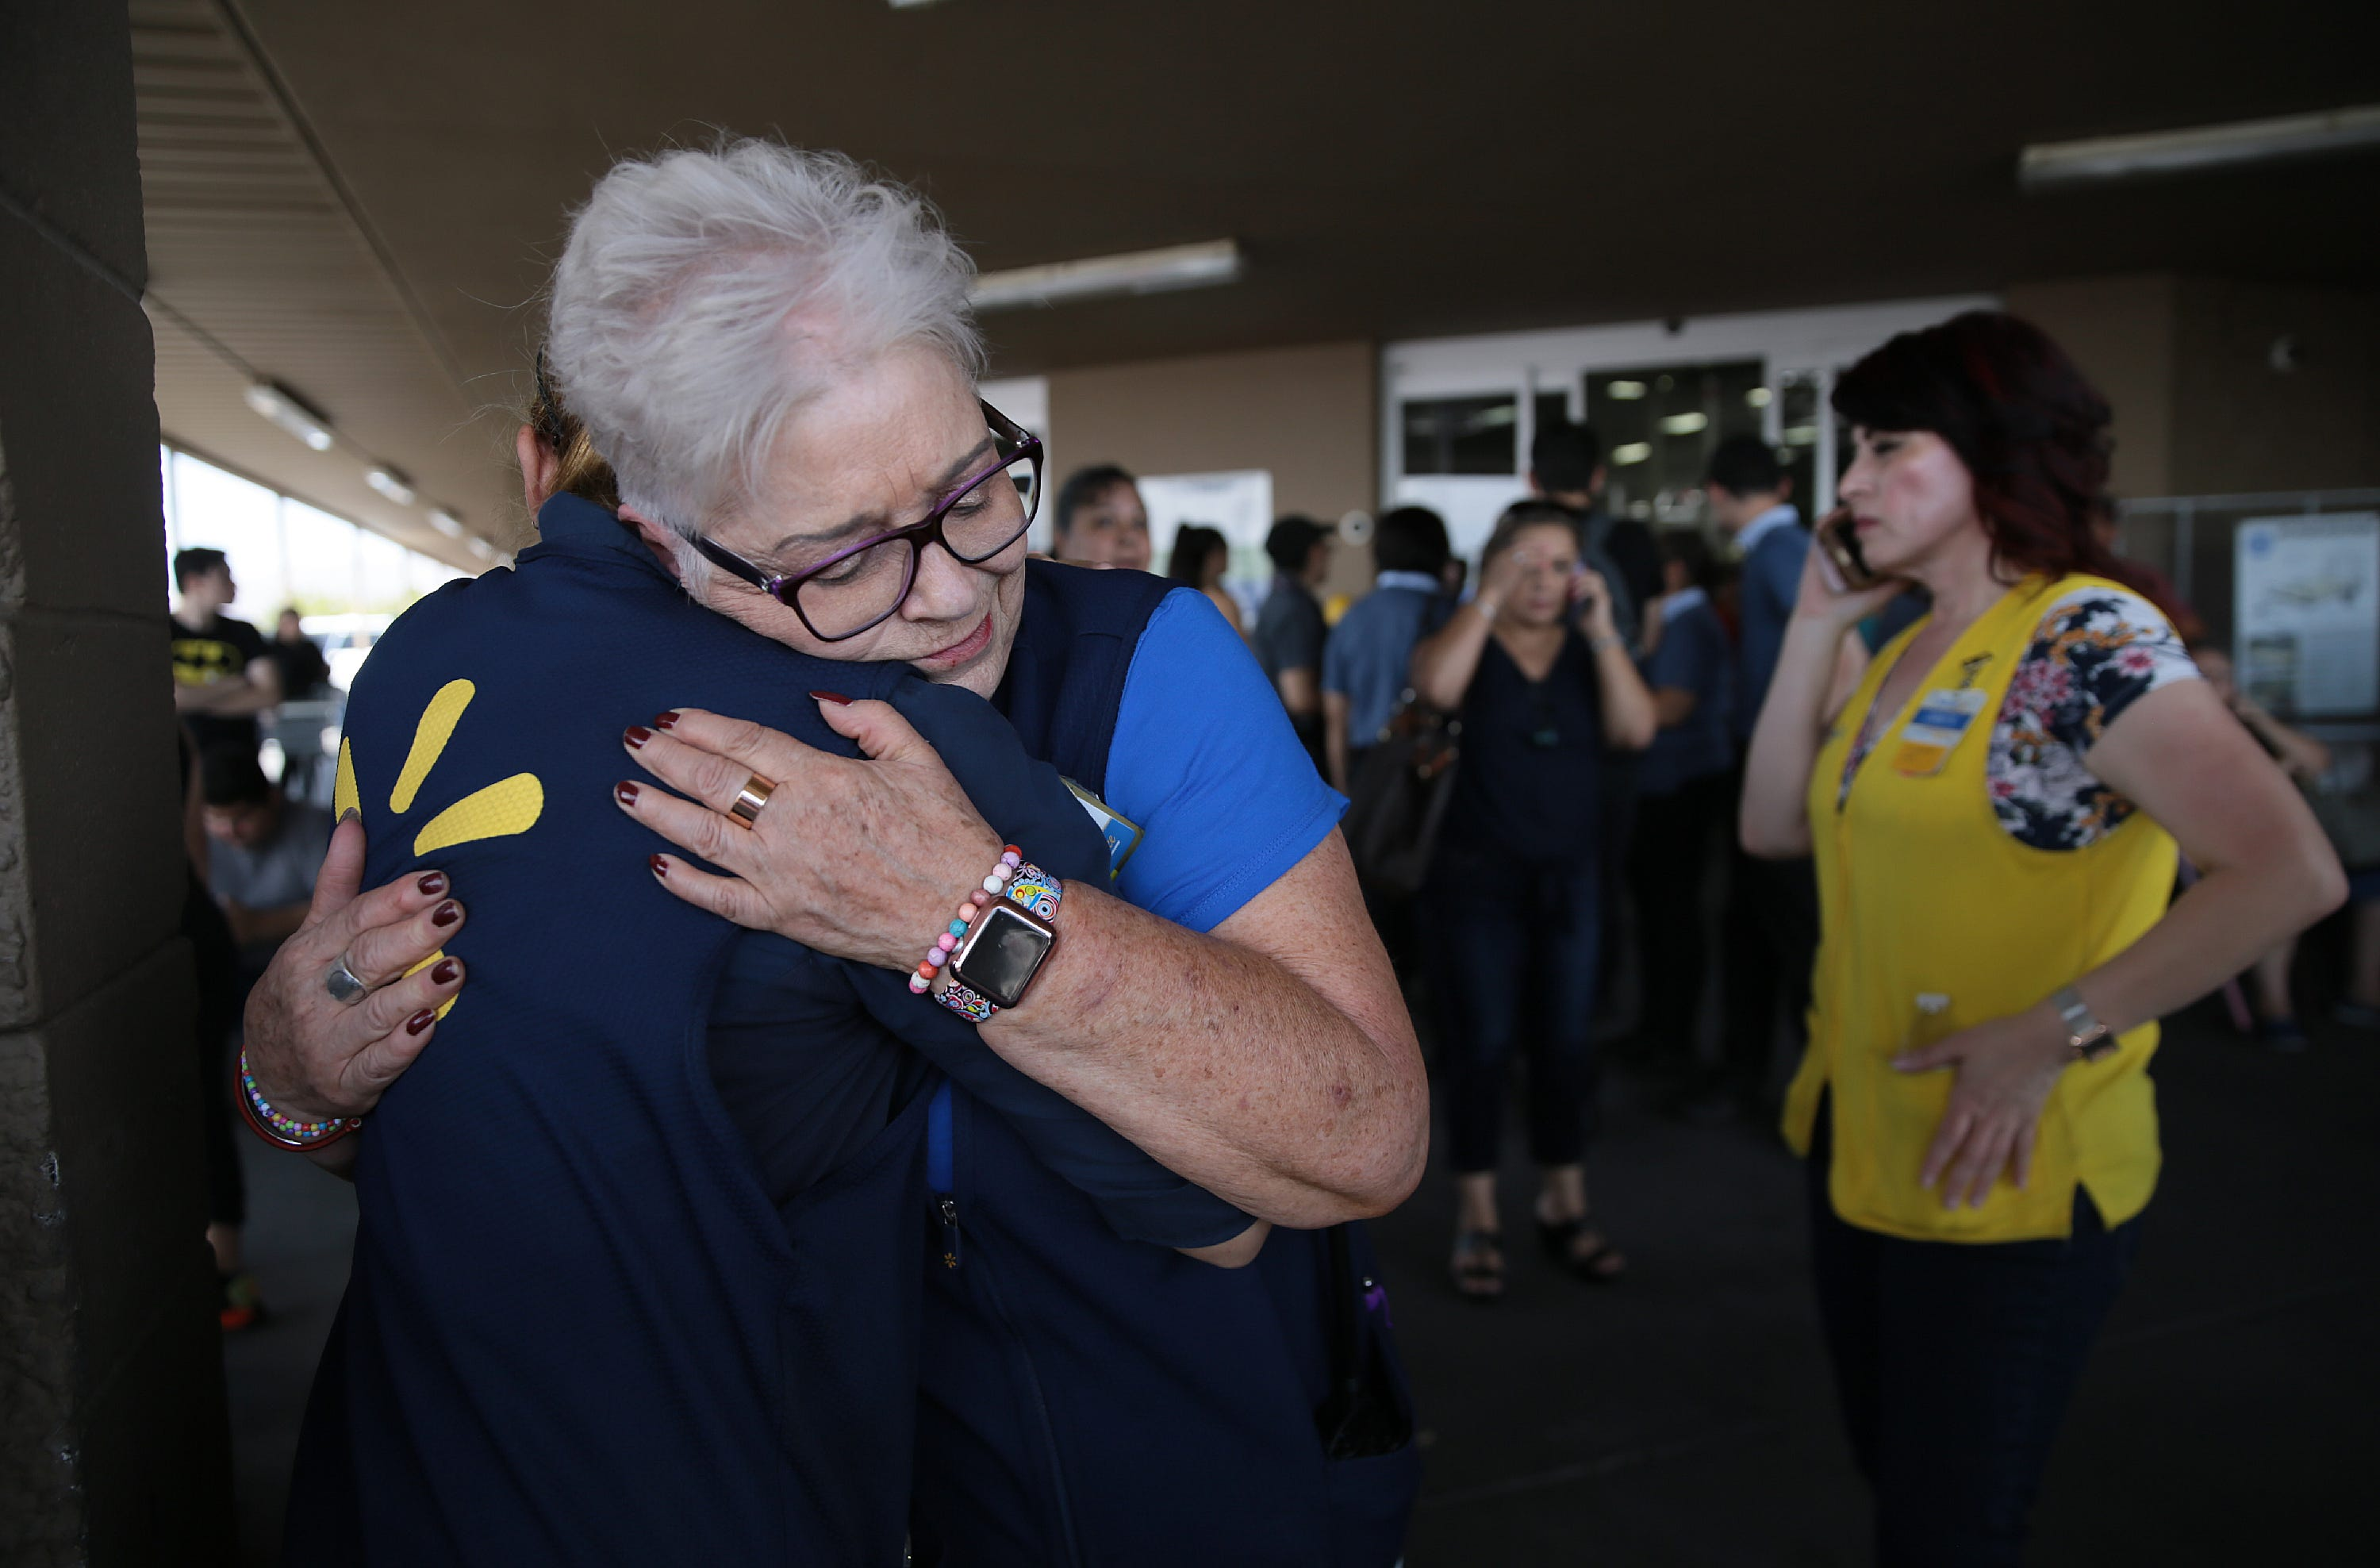 Walmart employees comfort one another after a shooter opened fire at the Walmart near Cielo Vista Mall in El Paso on Saturday, Aug. 3, 2019.